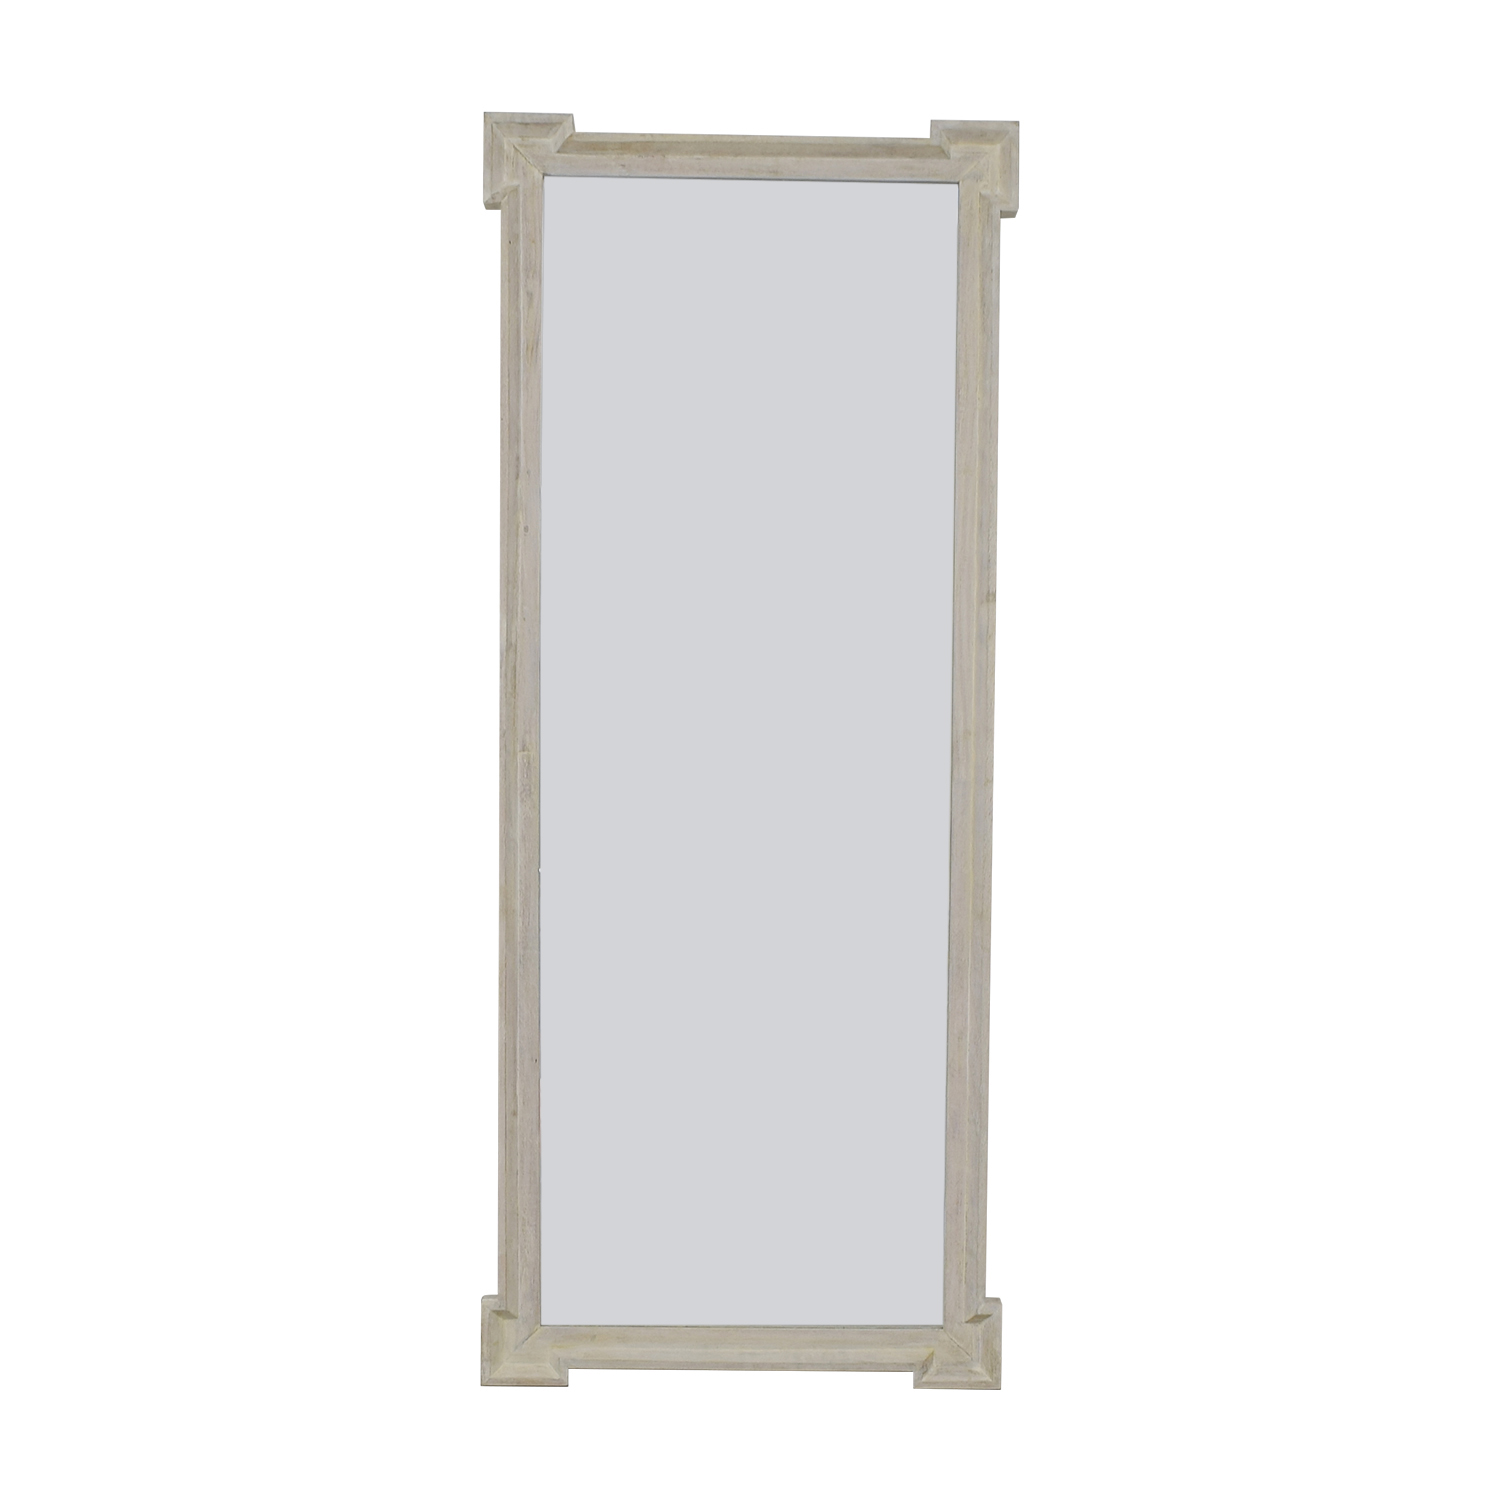 West Elm West Elm Cornerstone Floor Mirror used